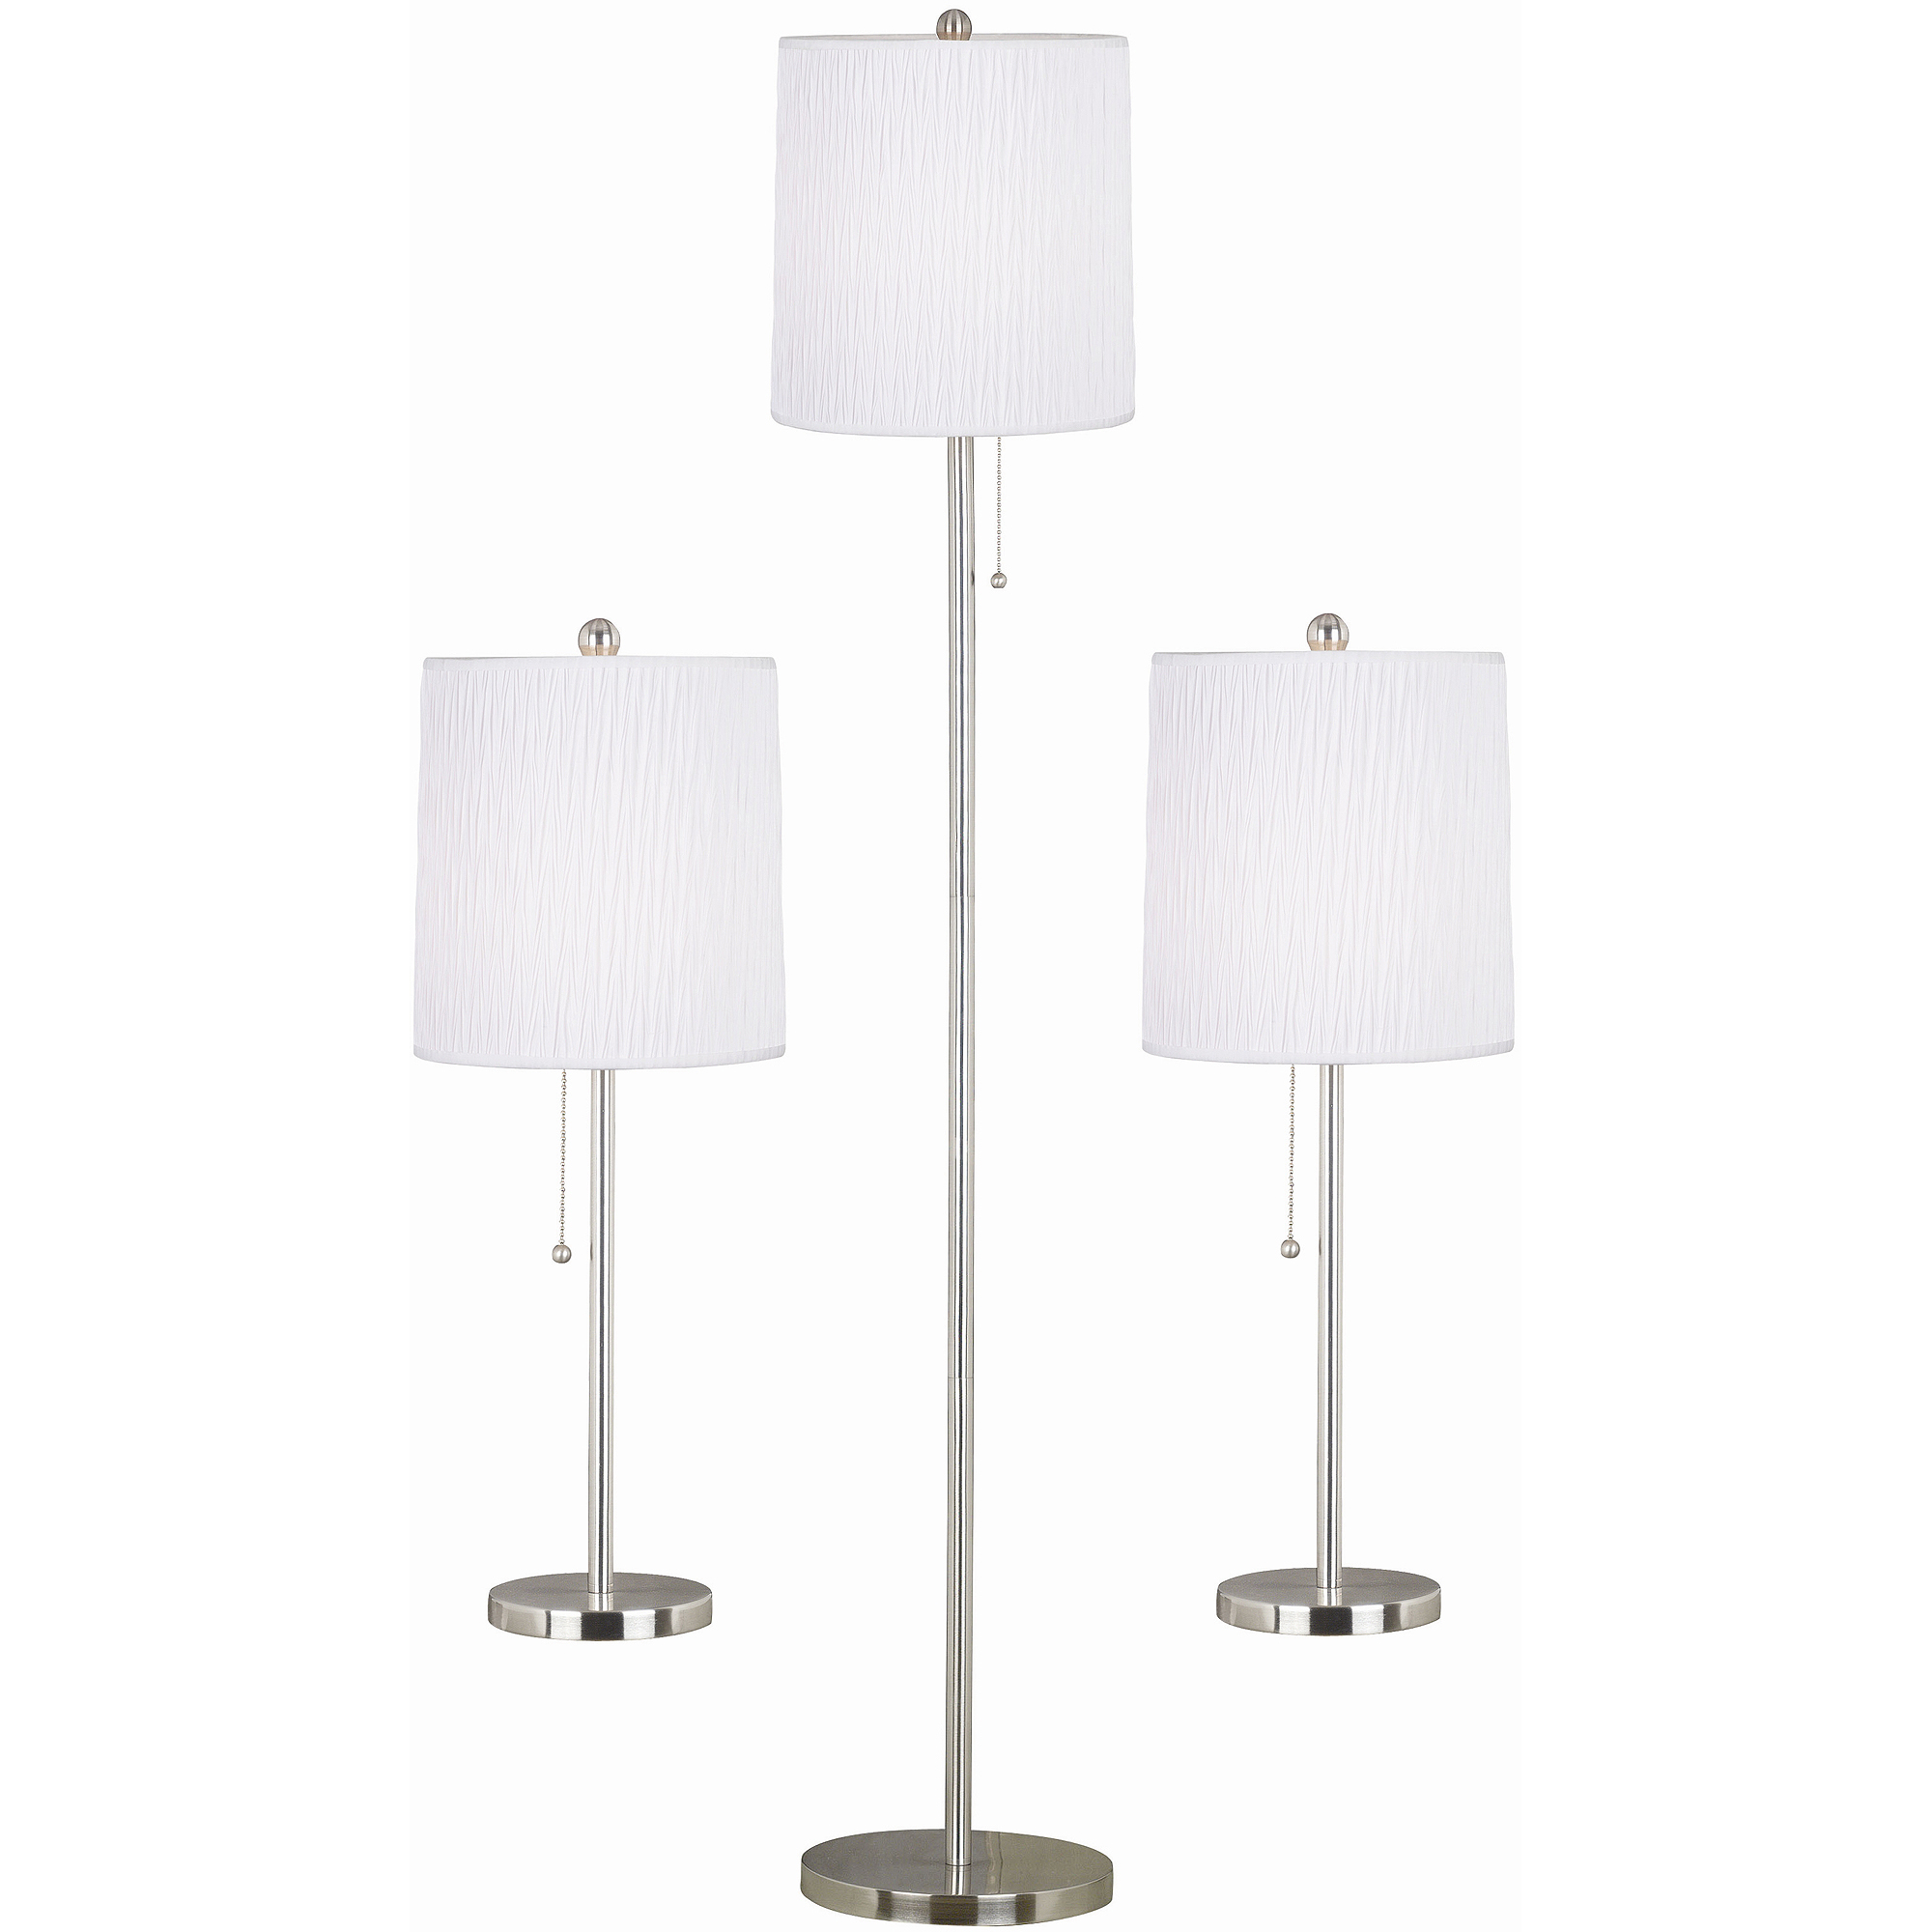 Floor lamp tables - Kenroy Home Selma 3 Piece Table Floor Lamp Set Brushed Steel